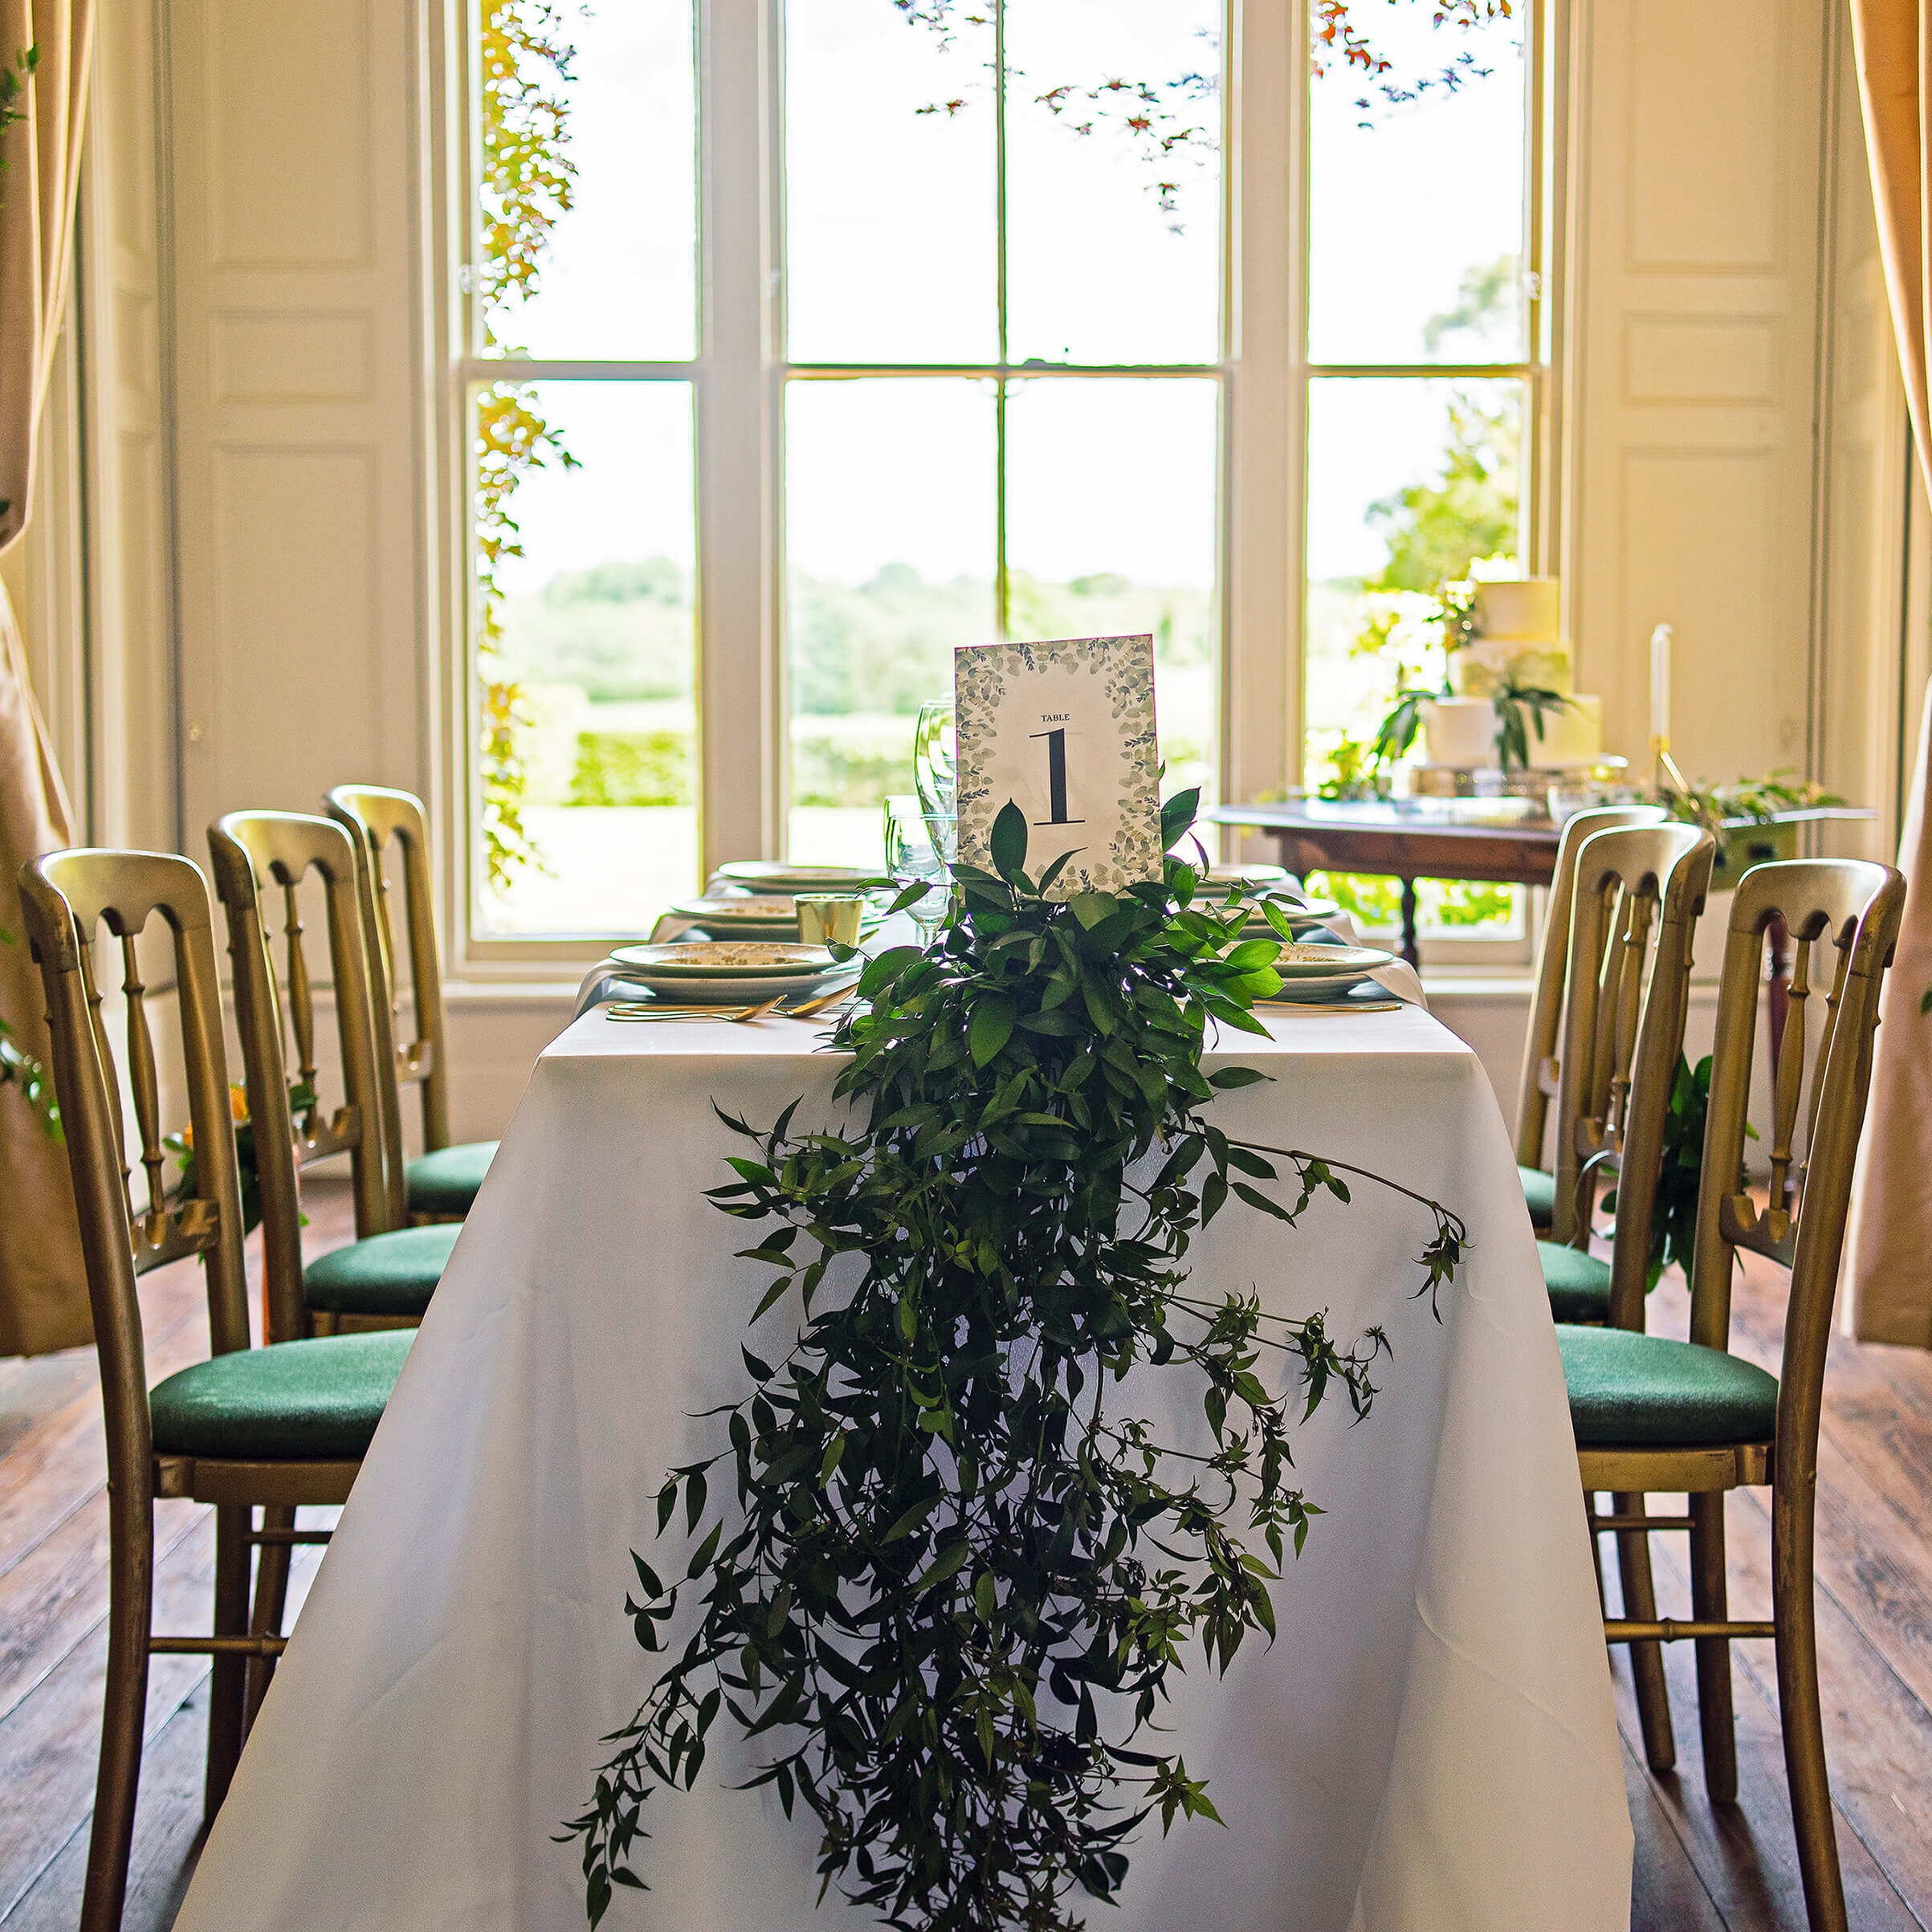 Table setting with Eucalyptus foliage center piece and Design By Emily Eucalyptus Table Number Card, at Nurstead Court Wedding Venue, Kent.